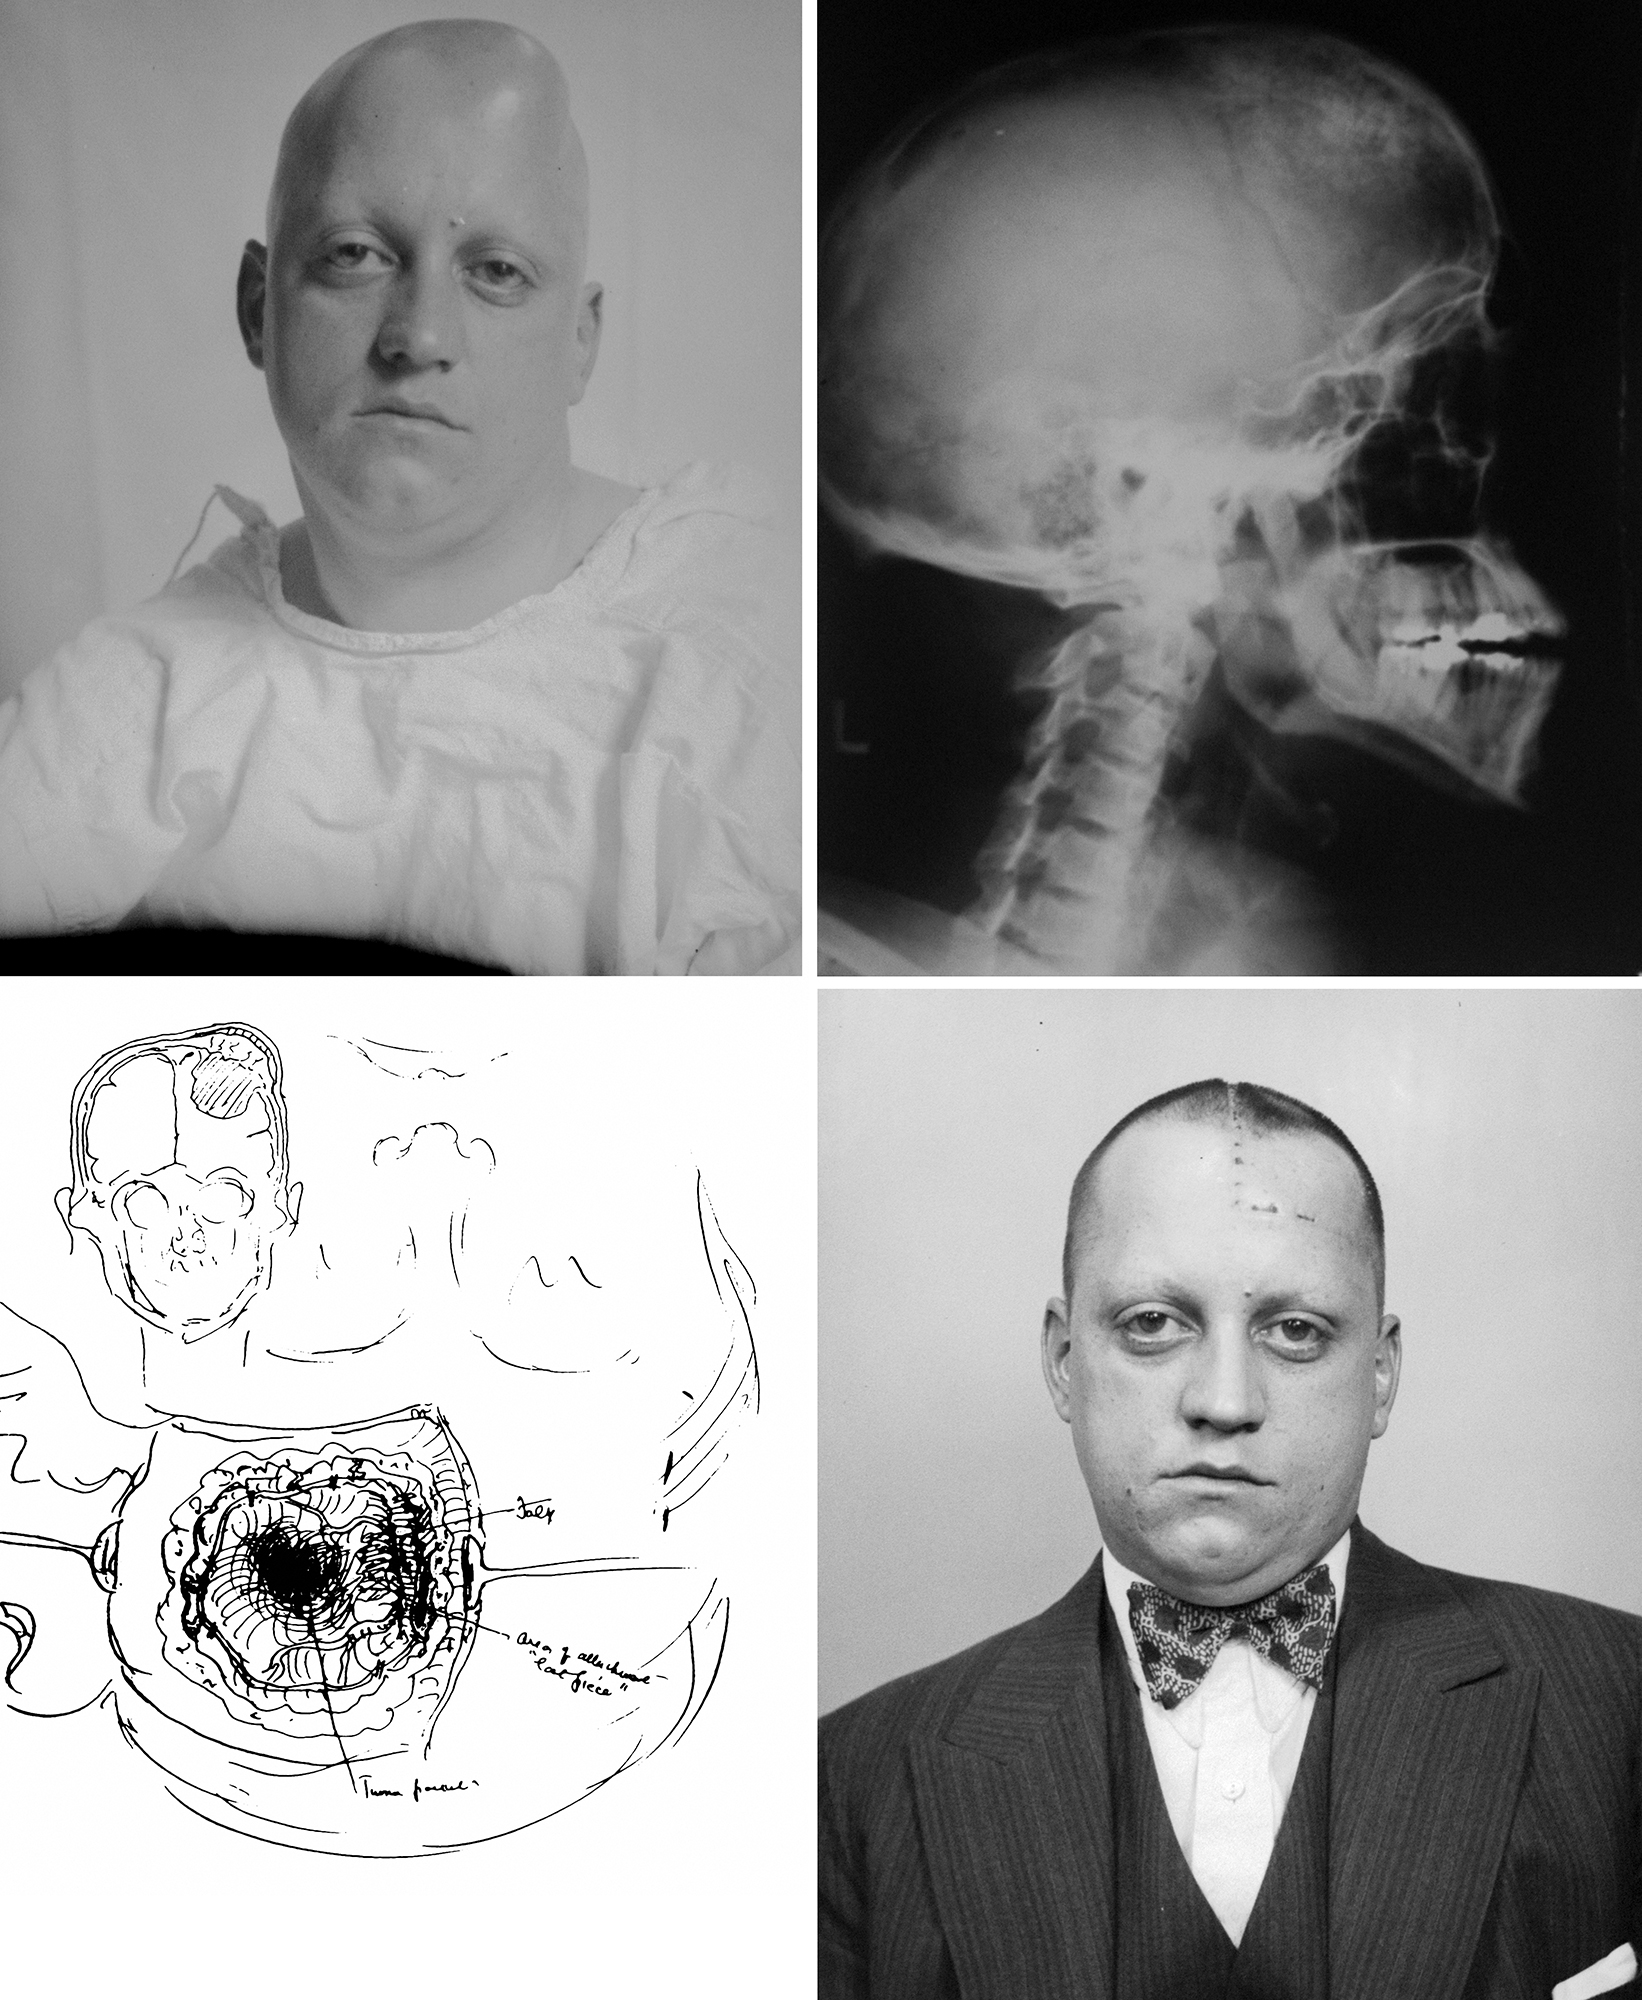 Figure 2: Images of one of Harvey Cushing's patients who underwent resection of a left frontal hyperostotic meningioma. Note the preoperative X-ray image (right upper image), intraoperative findings as sketched by Cushing (left lower image) and postoperative outcome (right lower image) (Courtesy of the Cushing Brain Tumor Registry at Yale University).